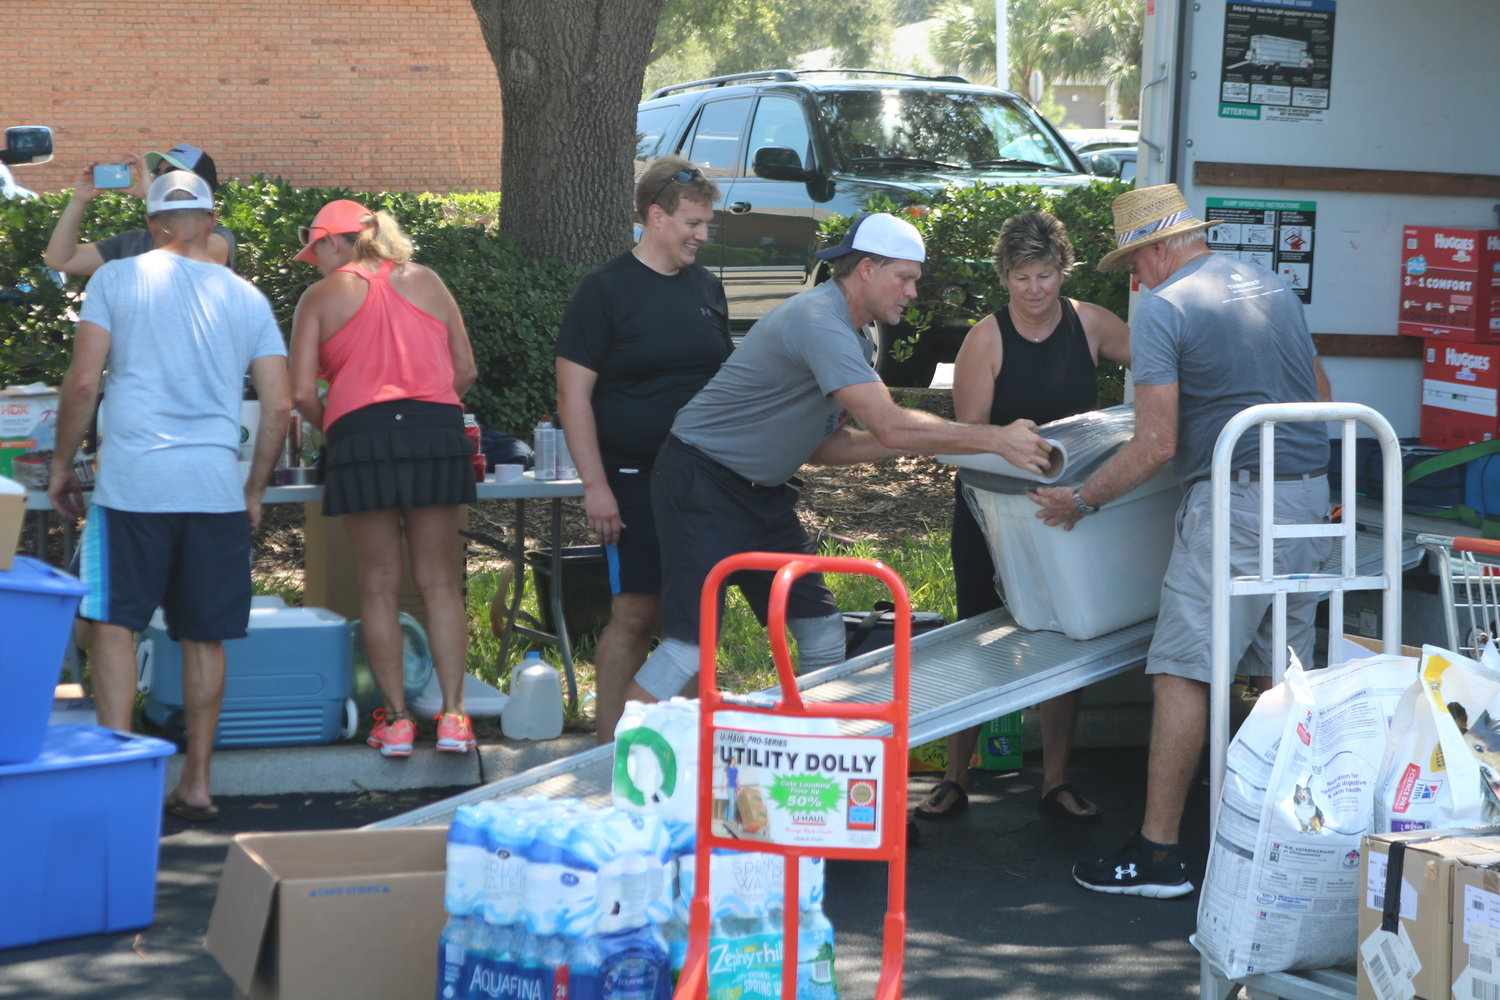 Volunteers help stocking up the UHaul trucks located at Winn-Dixie off Solana Road and A1A.